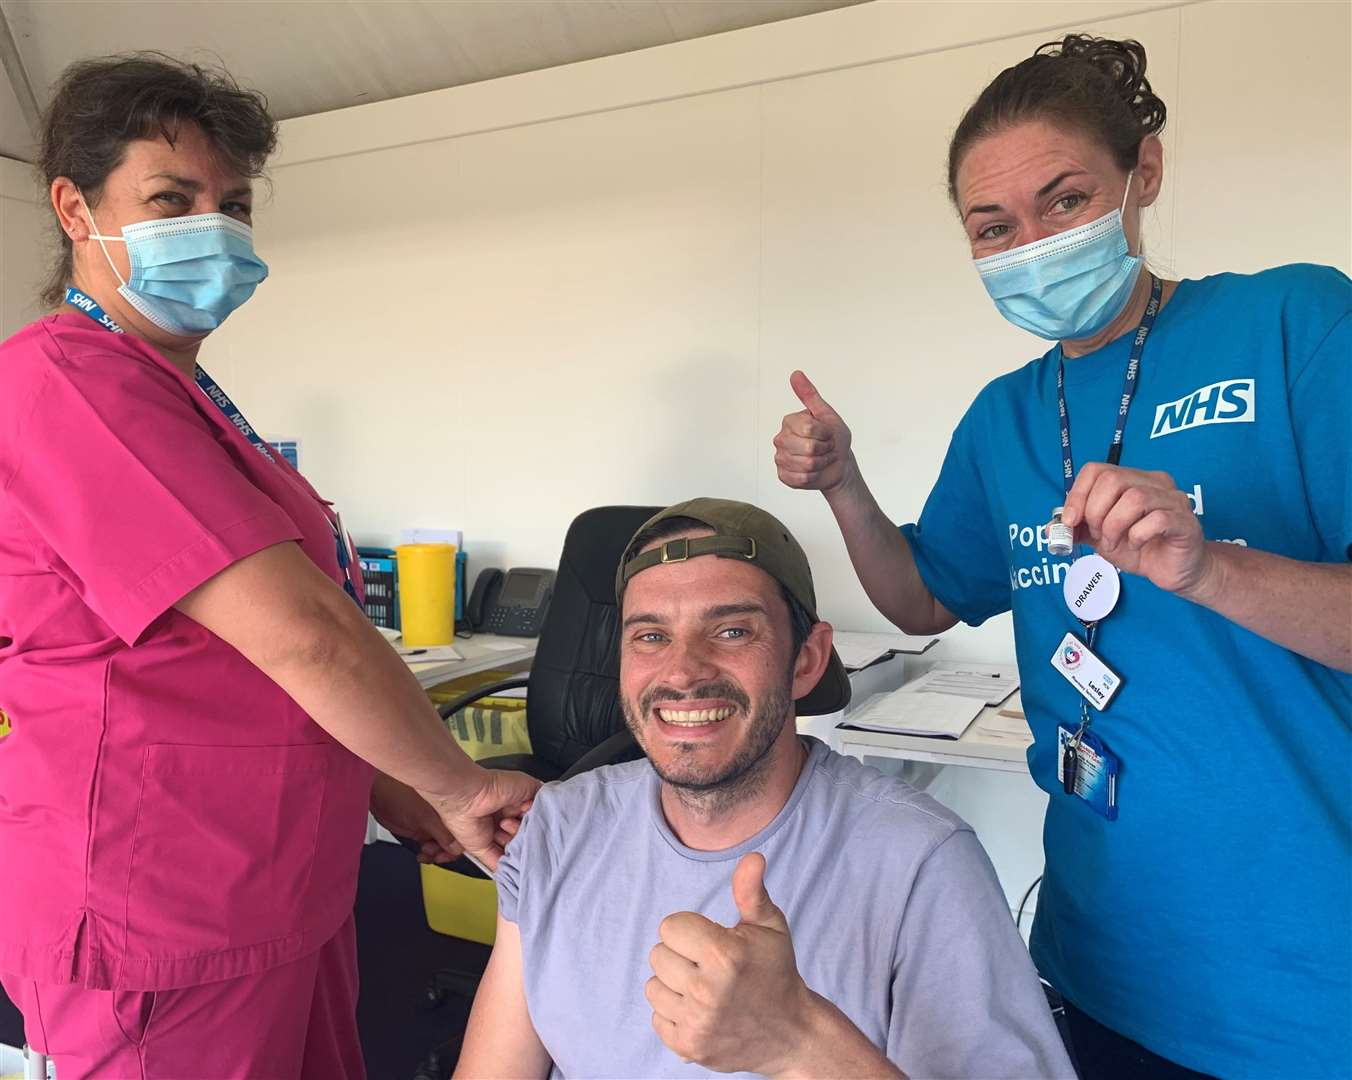 Phil Myers was the 1,000th person to receive a Covid vaccine at the Sandwich Open pop-up vaccination center on Sunday